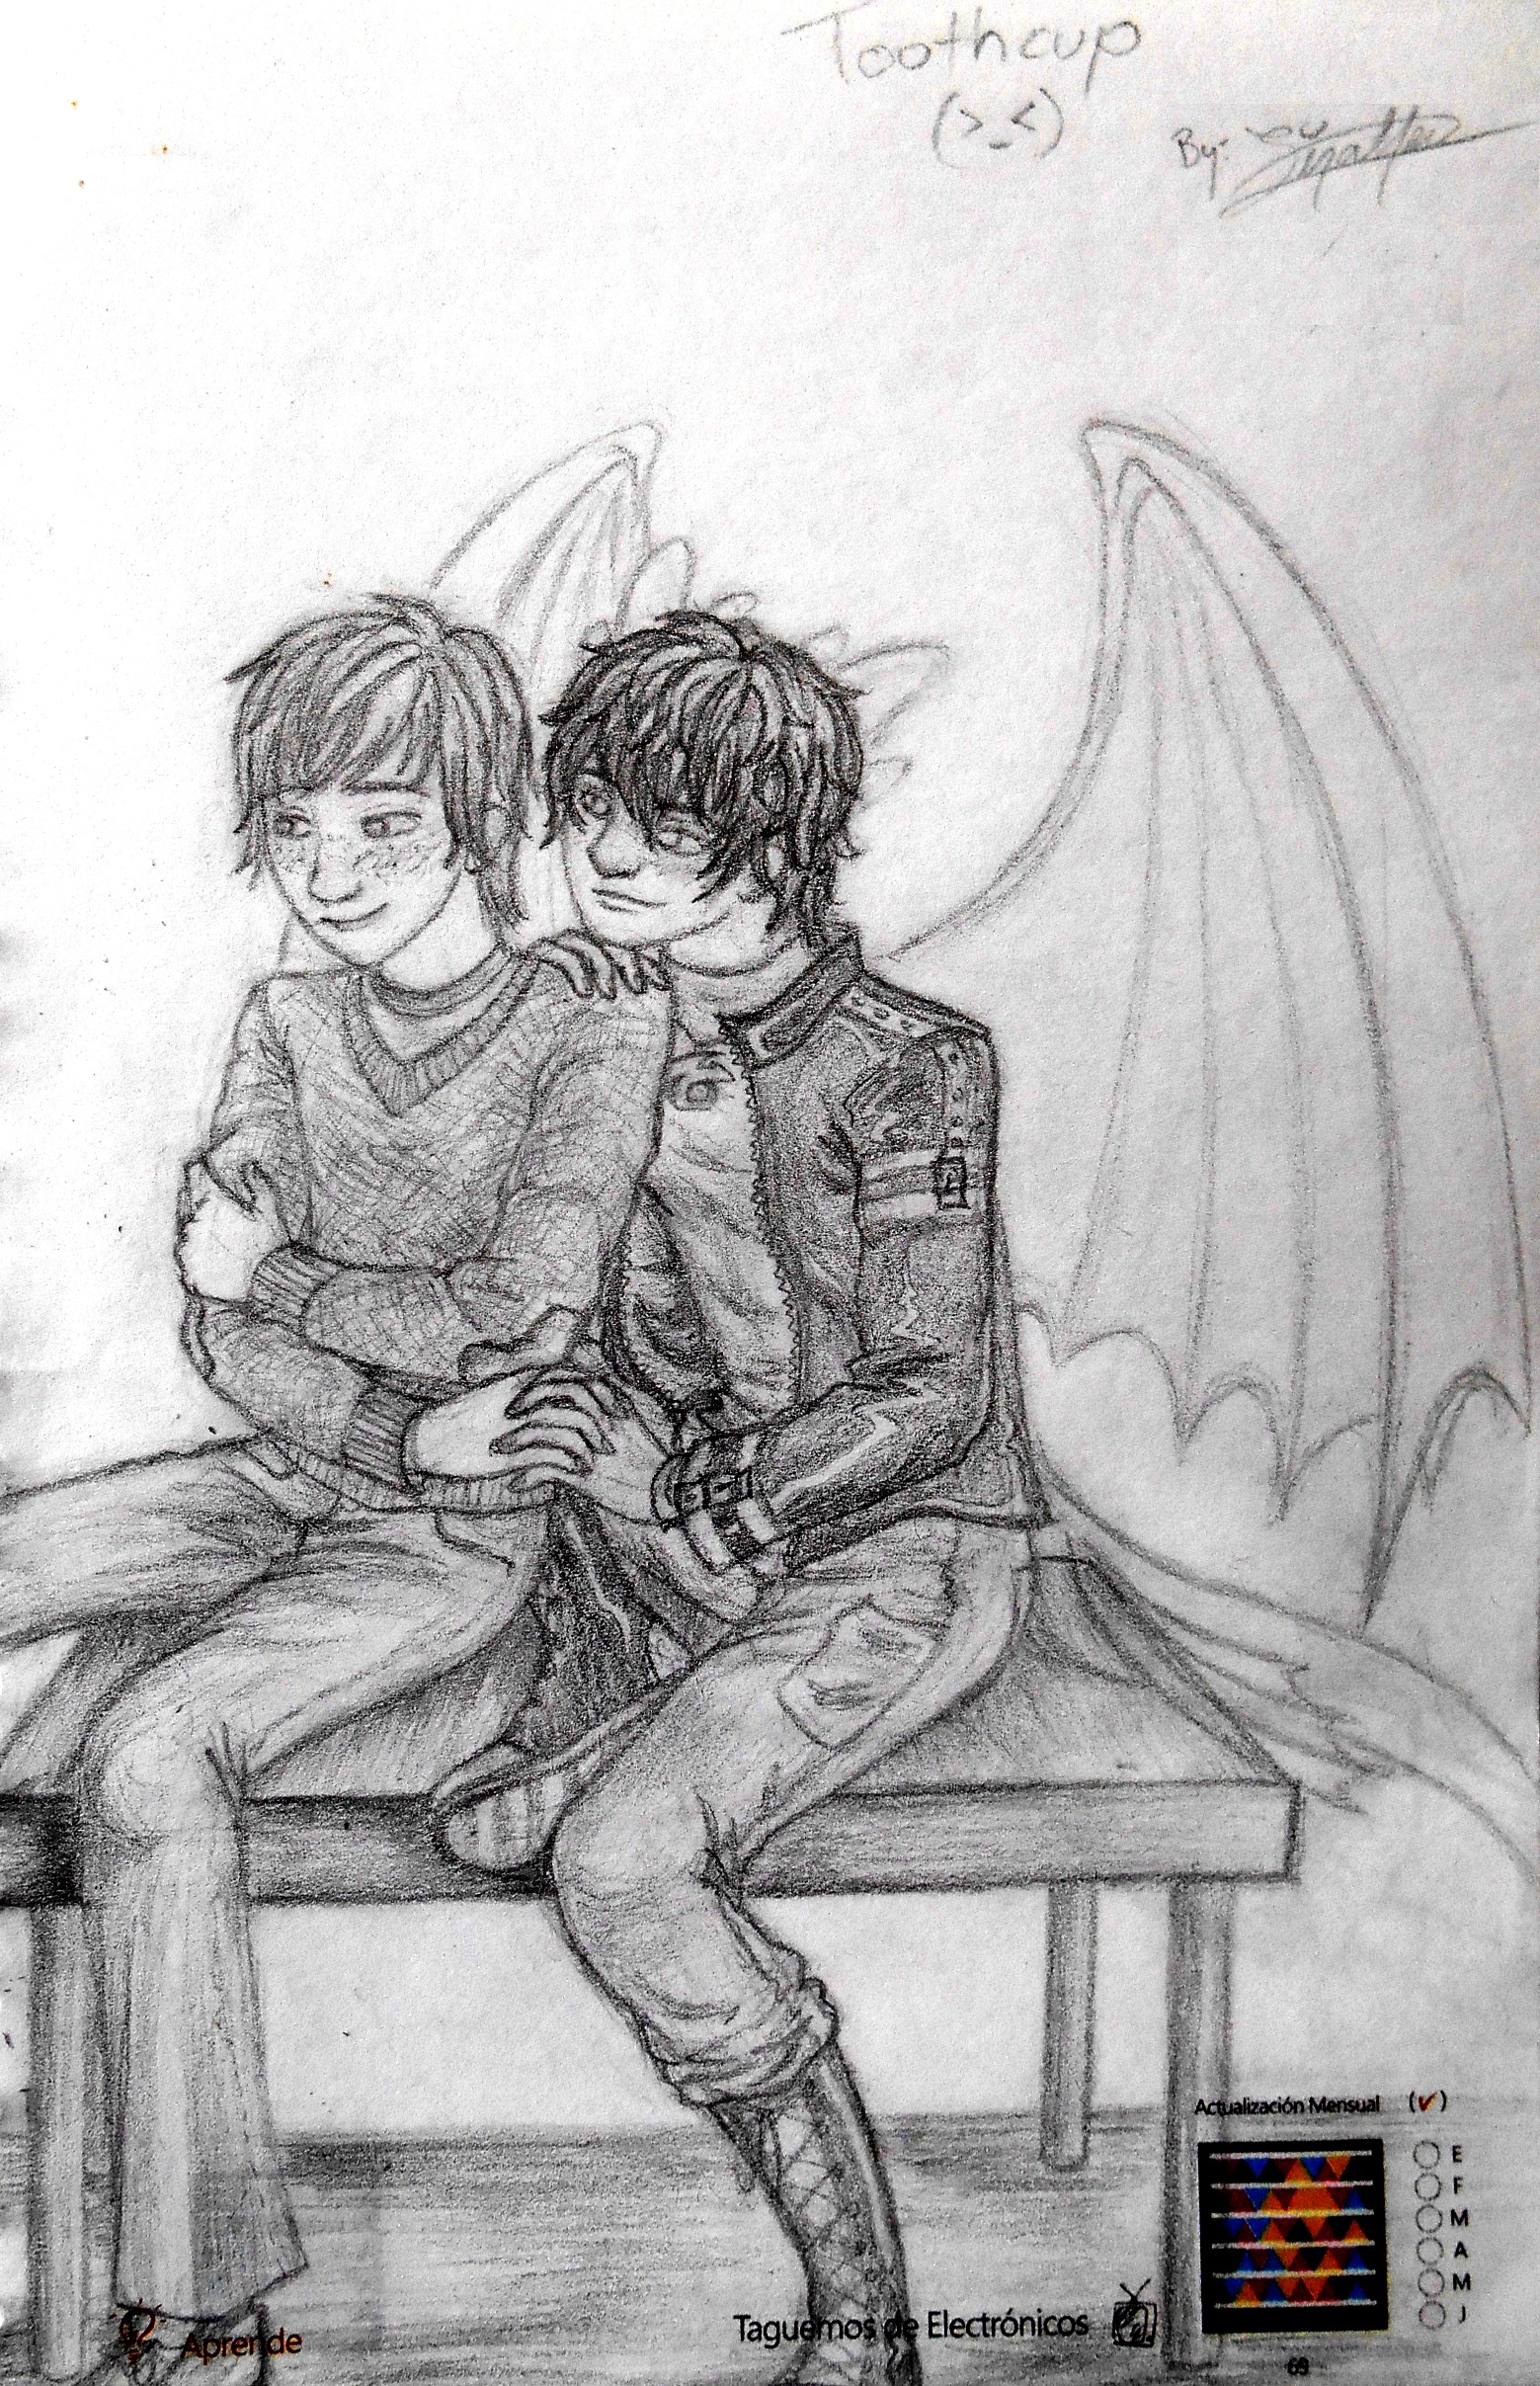 Fanfiction on ToothlessXHiccup - DeviantArt